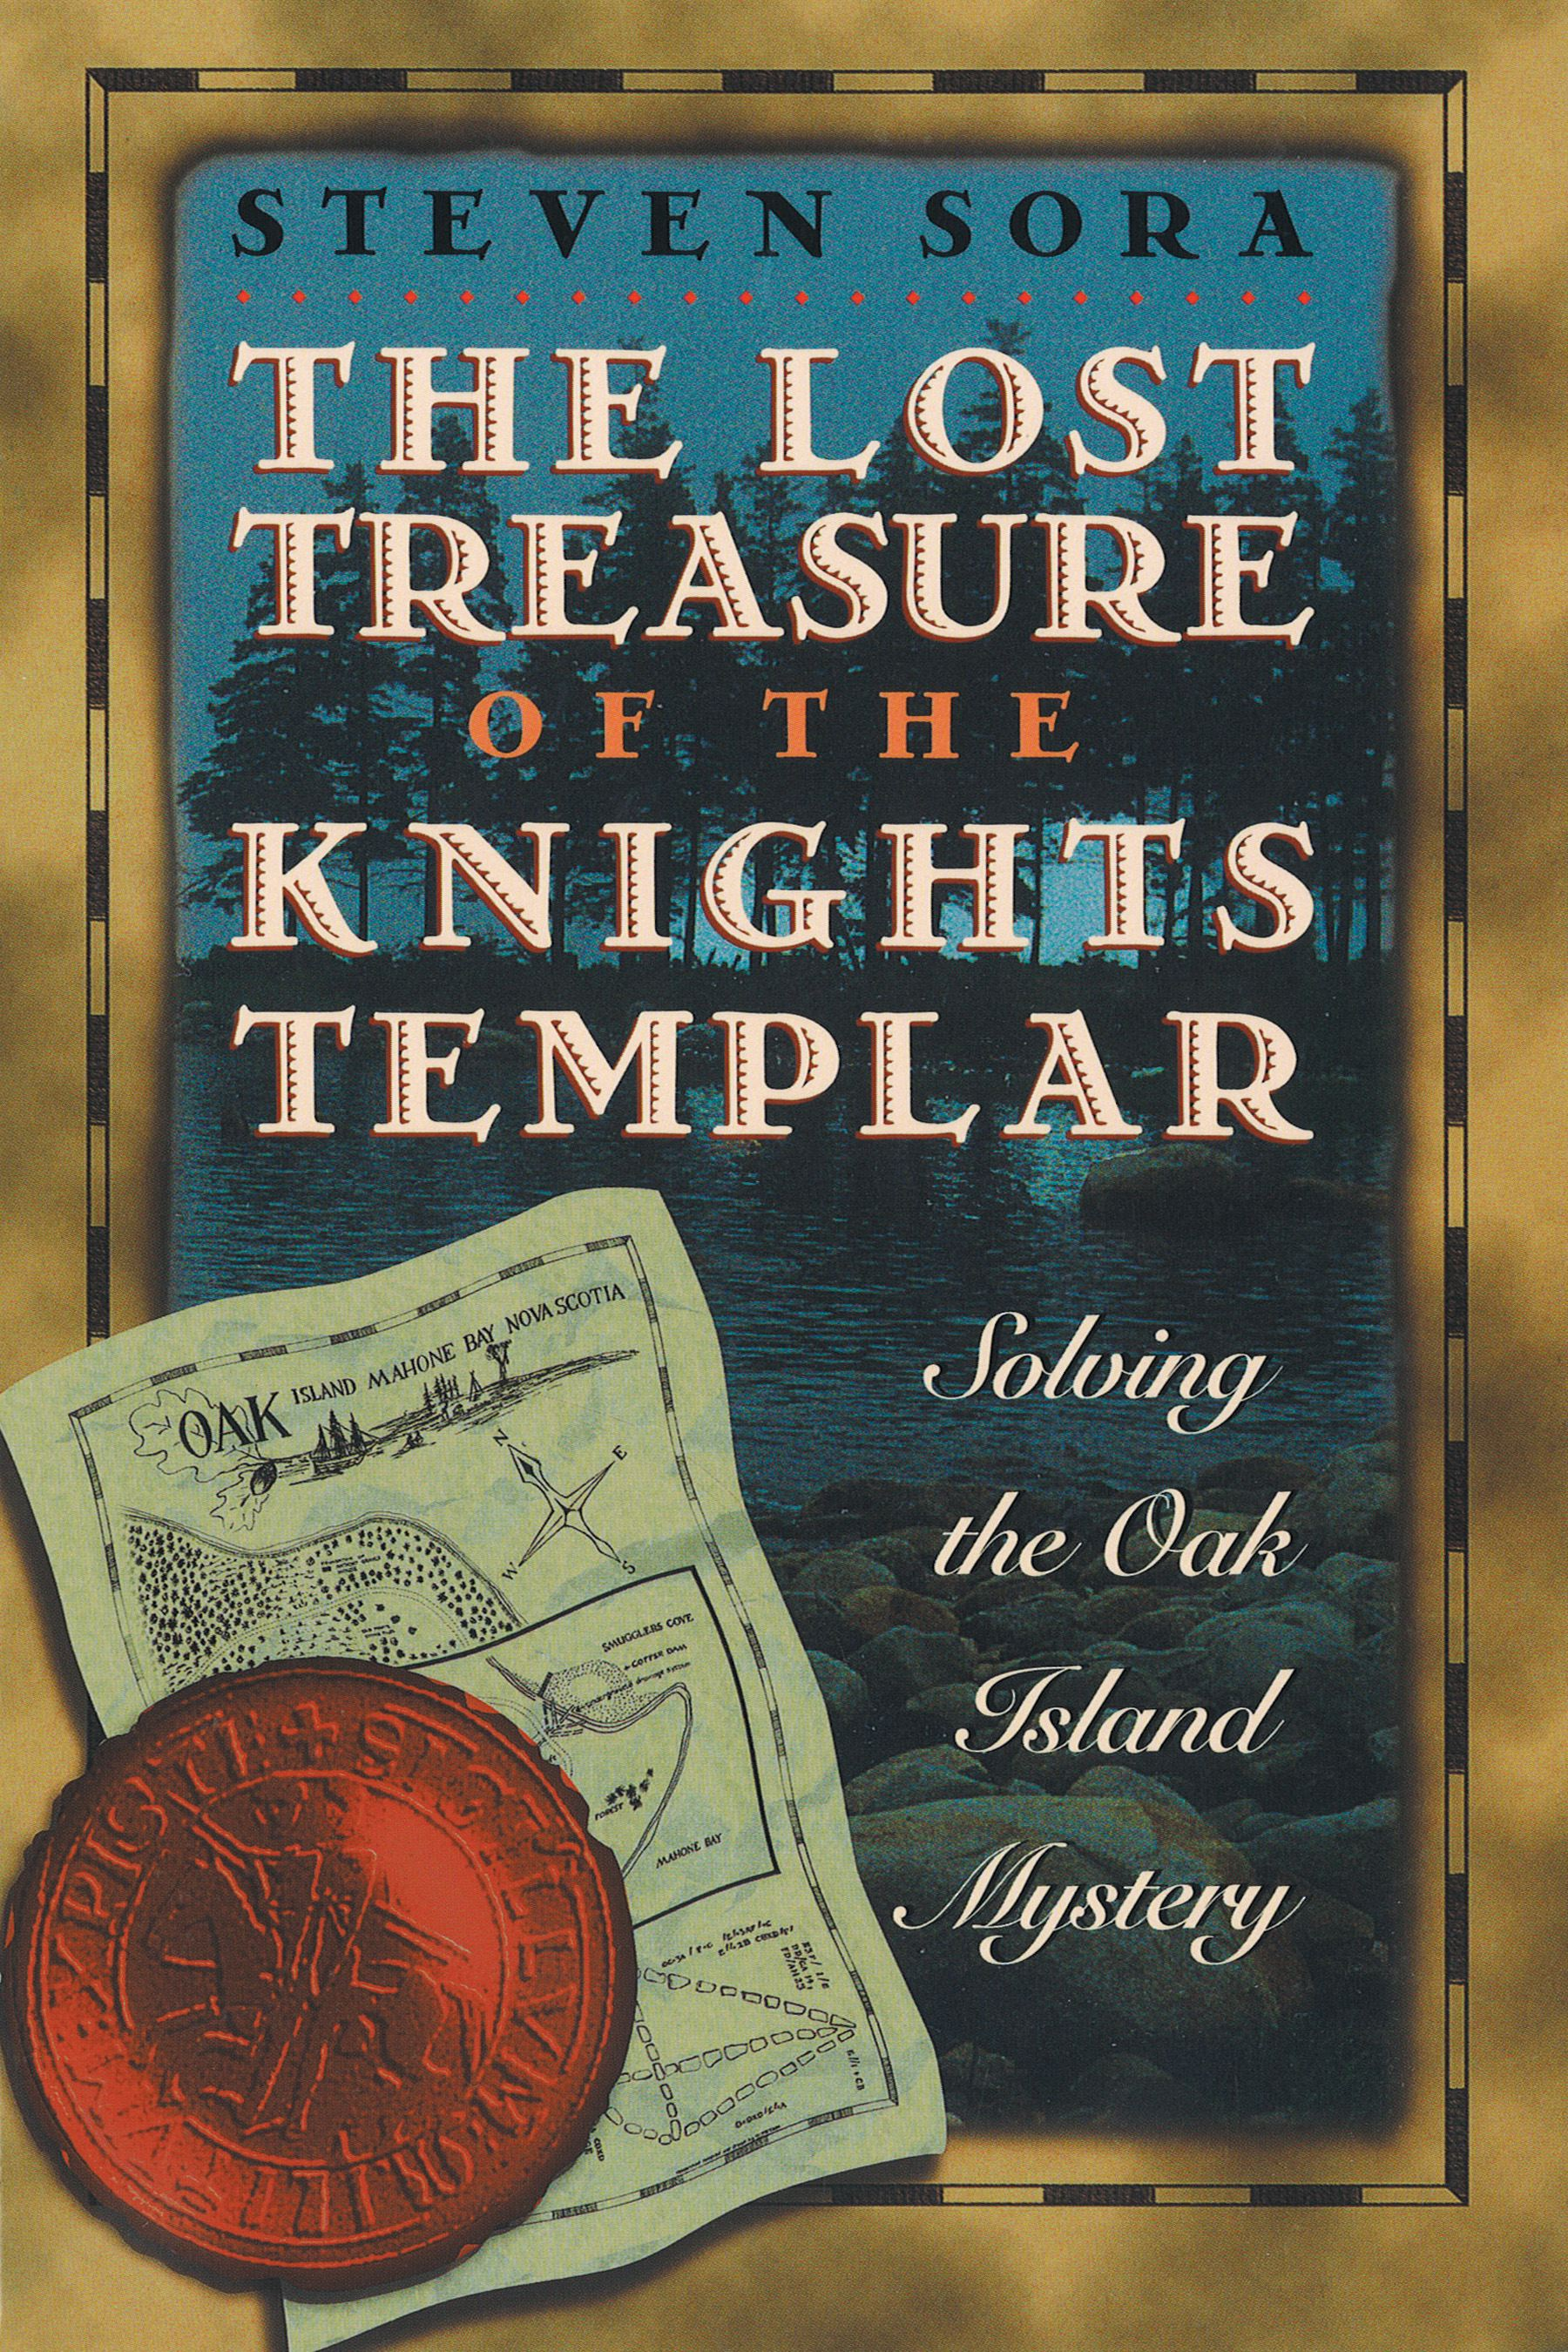 The lost treasure of the knights templar 9780892817108 hr